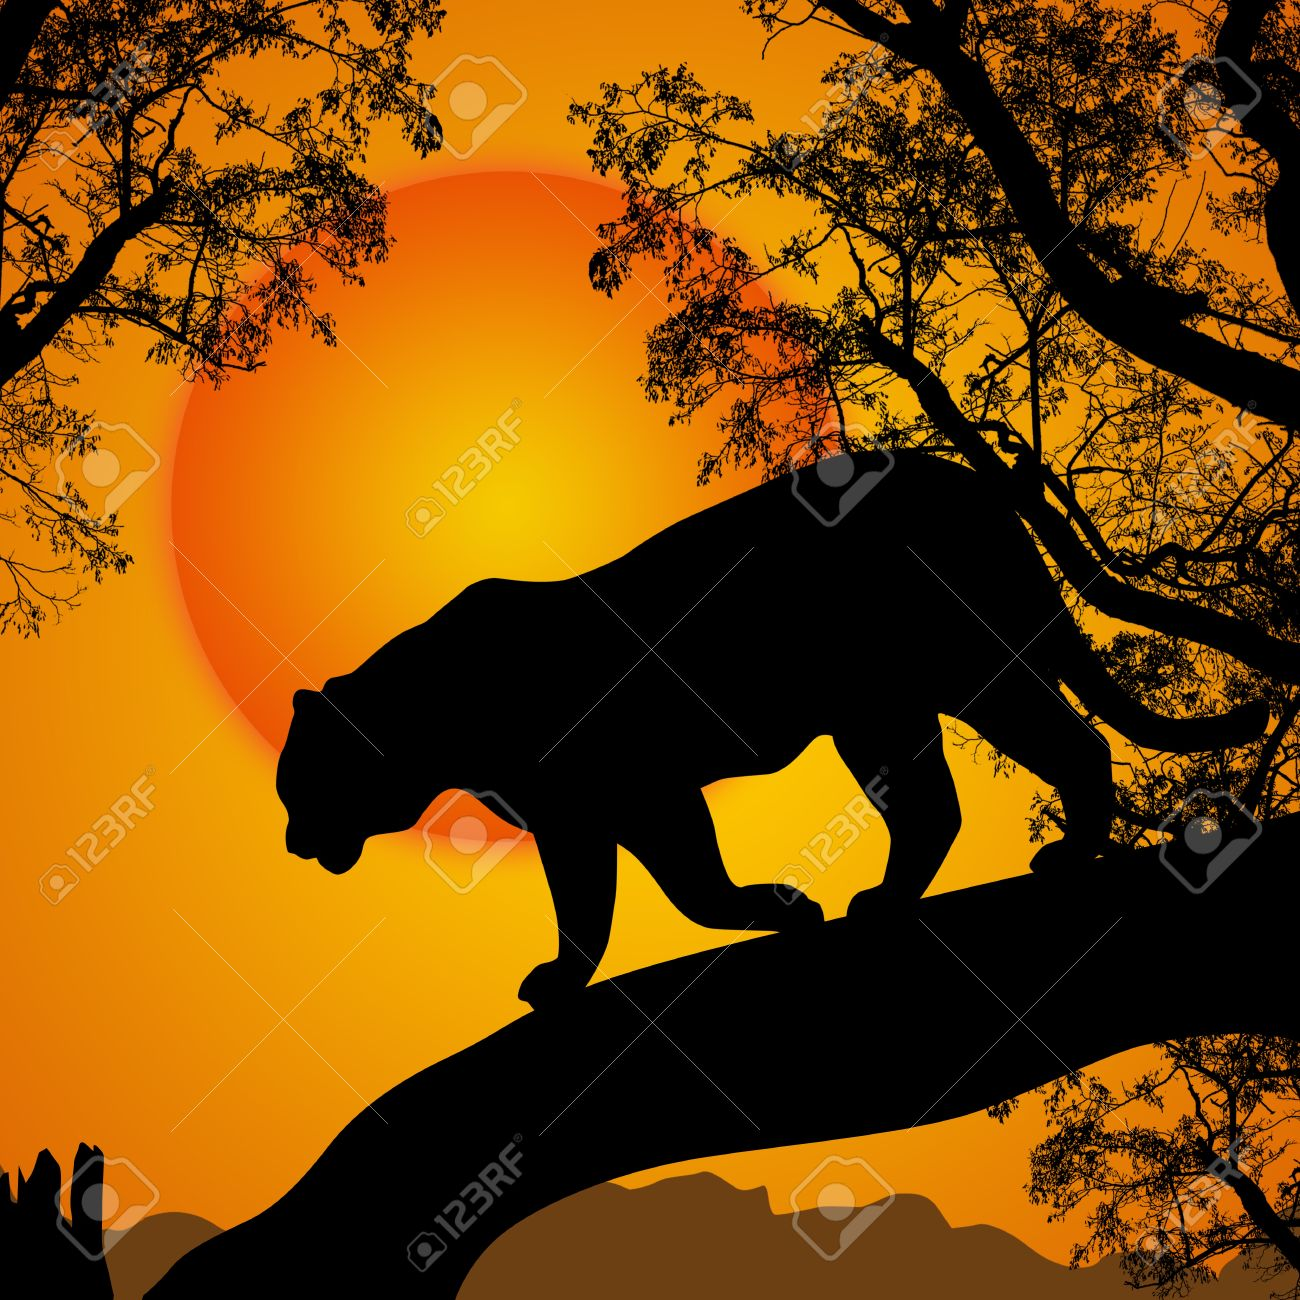 Silhouette view of tiger on a tree at beautiful sunset, vector illustration Stock Vector - 21068611